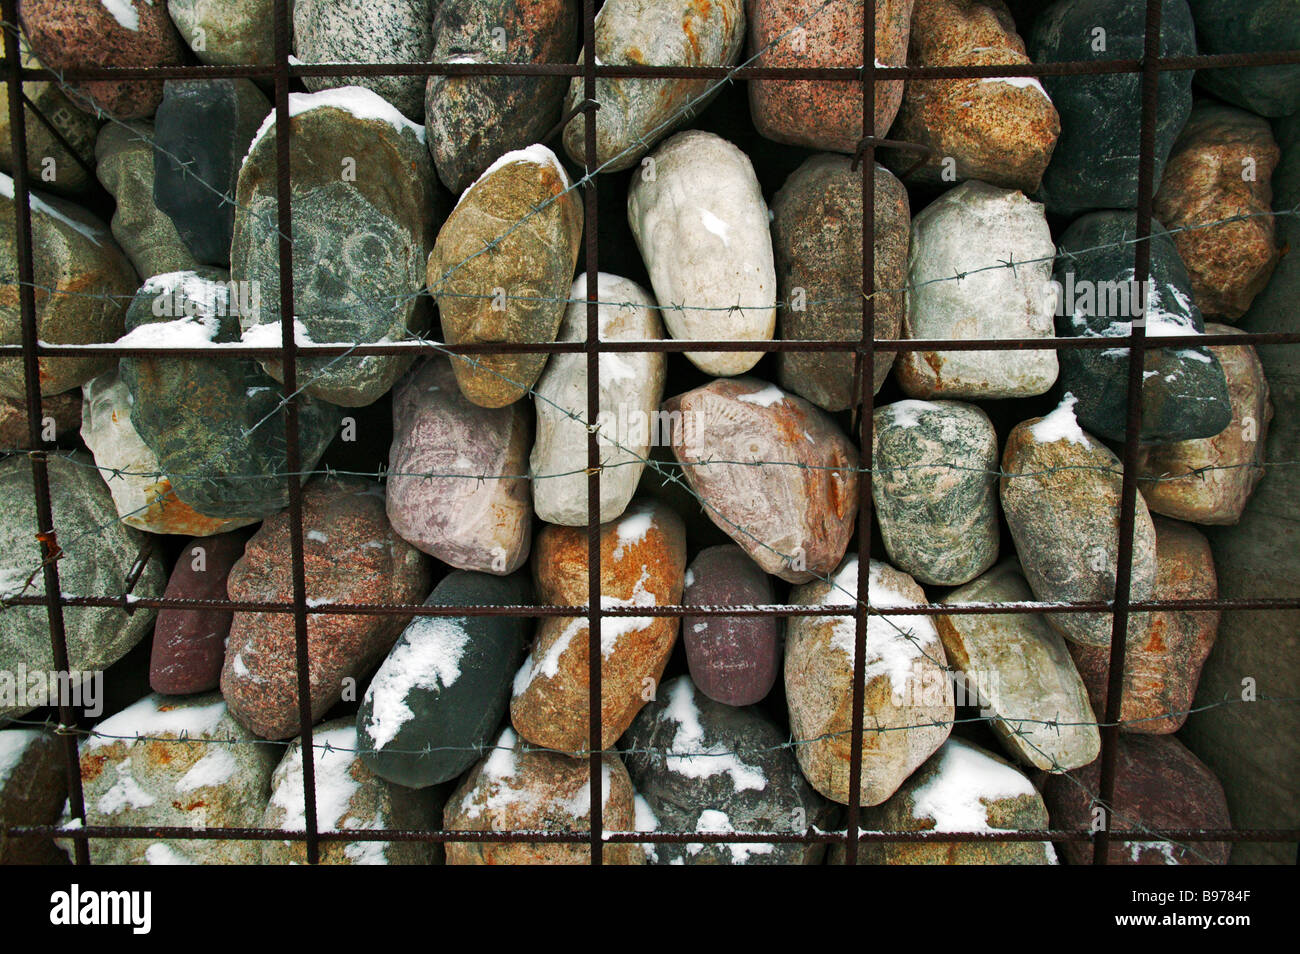 Natural stone sculpture to victims of Stalinist repressions Author Yevgeni Chubarov Outdoor art gallery Museon - Stock Image